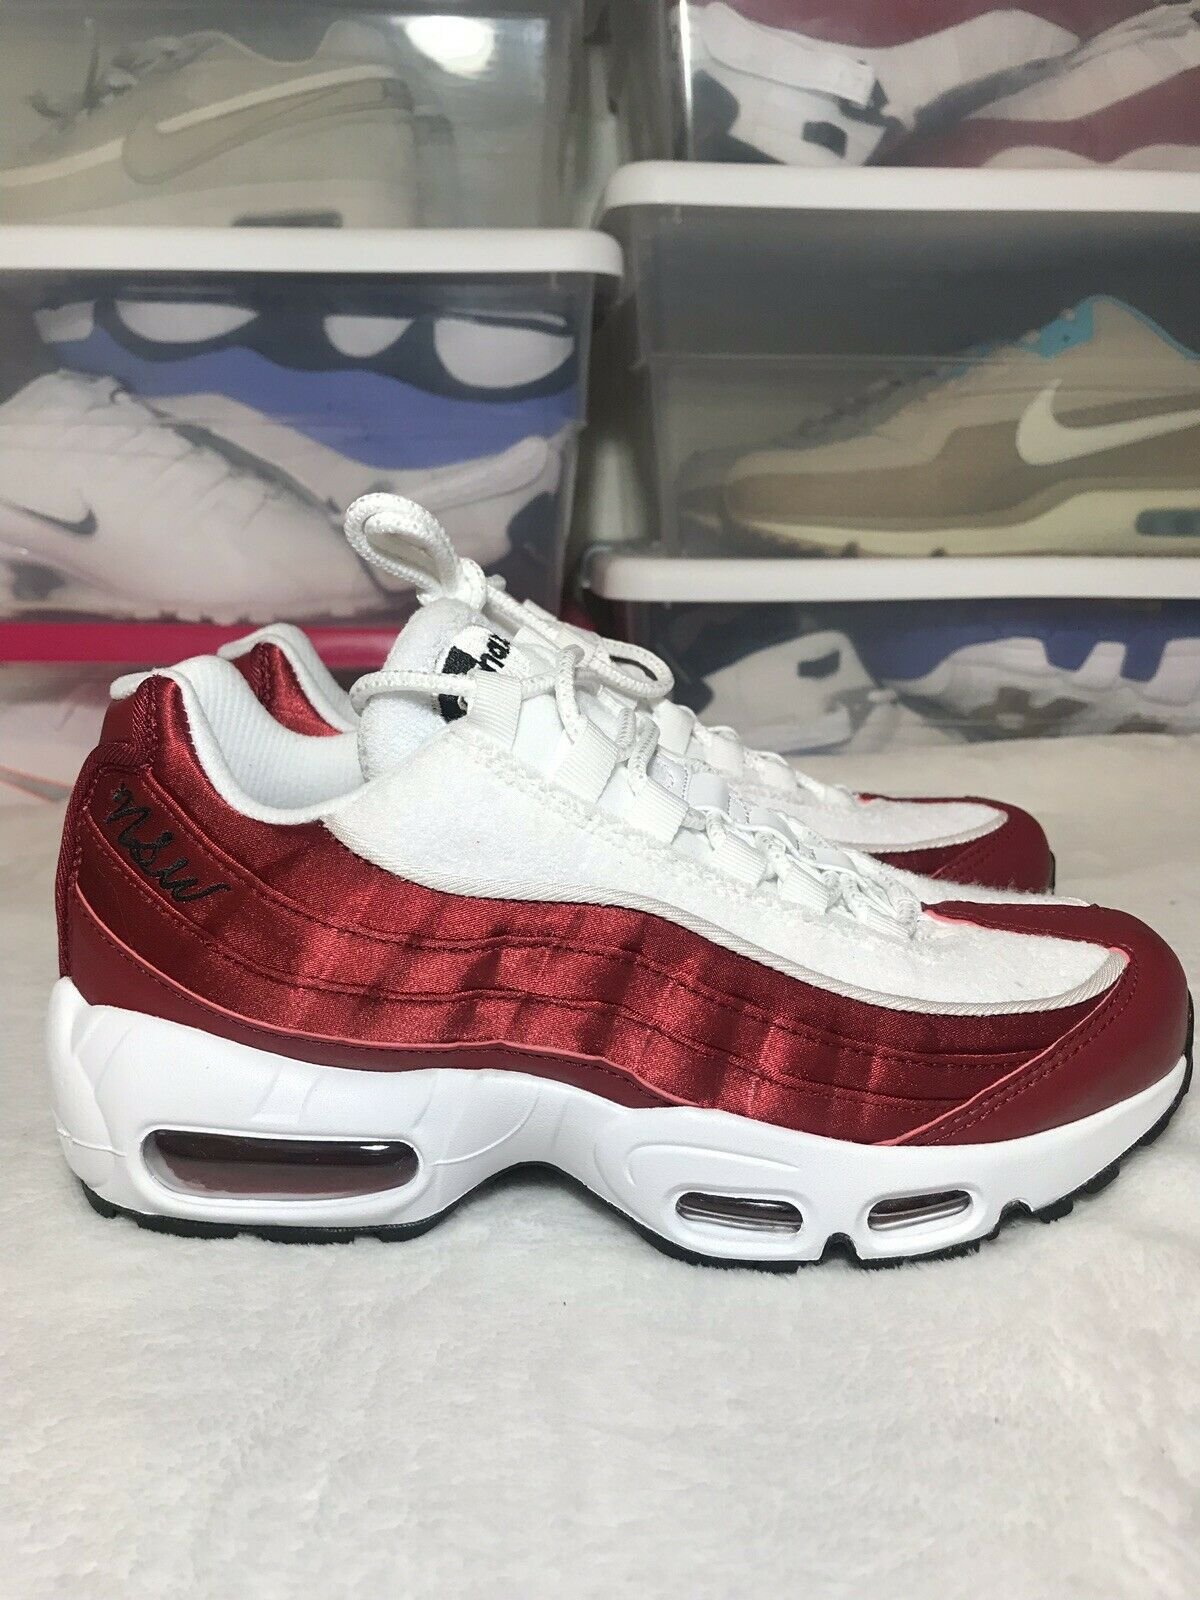 Nike Women's Air Max 95 LX Satin Terry NSW Red White Size 7.5 US AA1103-601 New